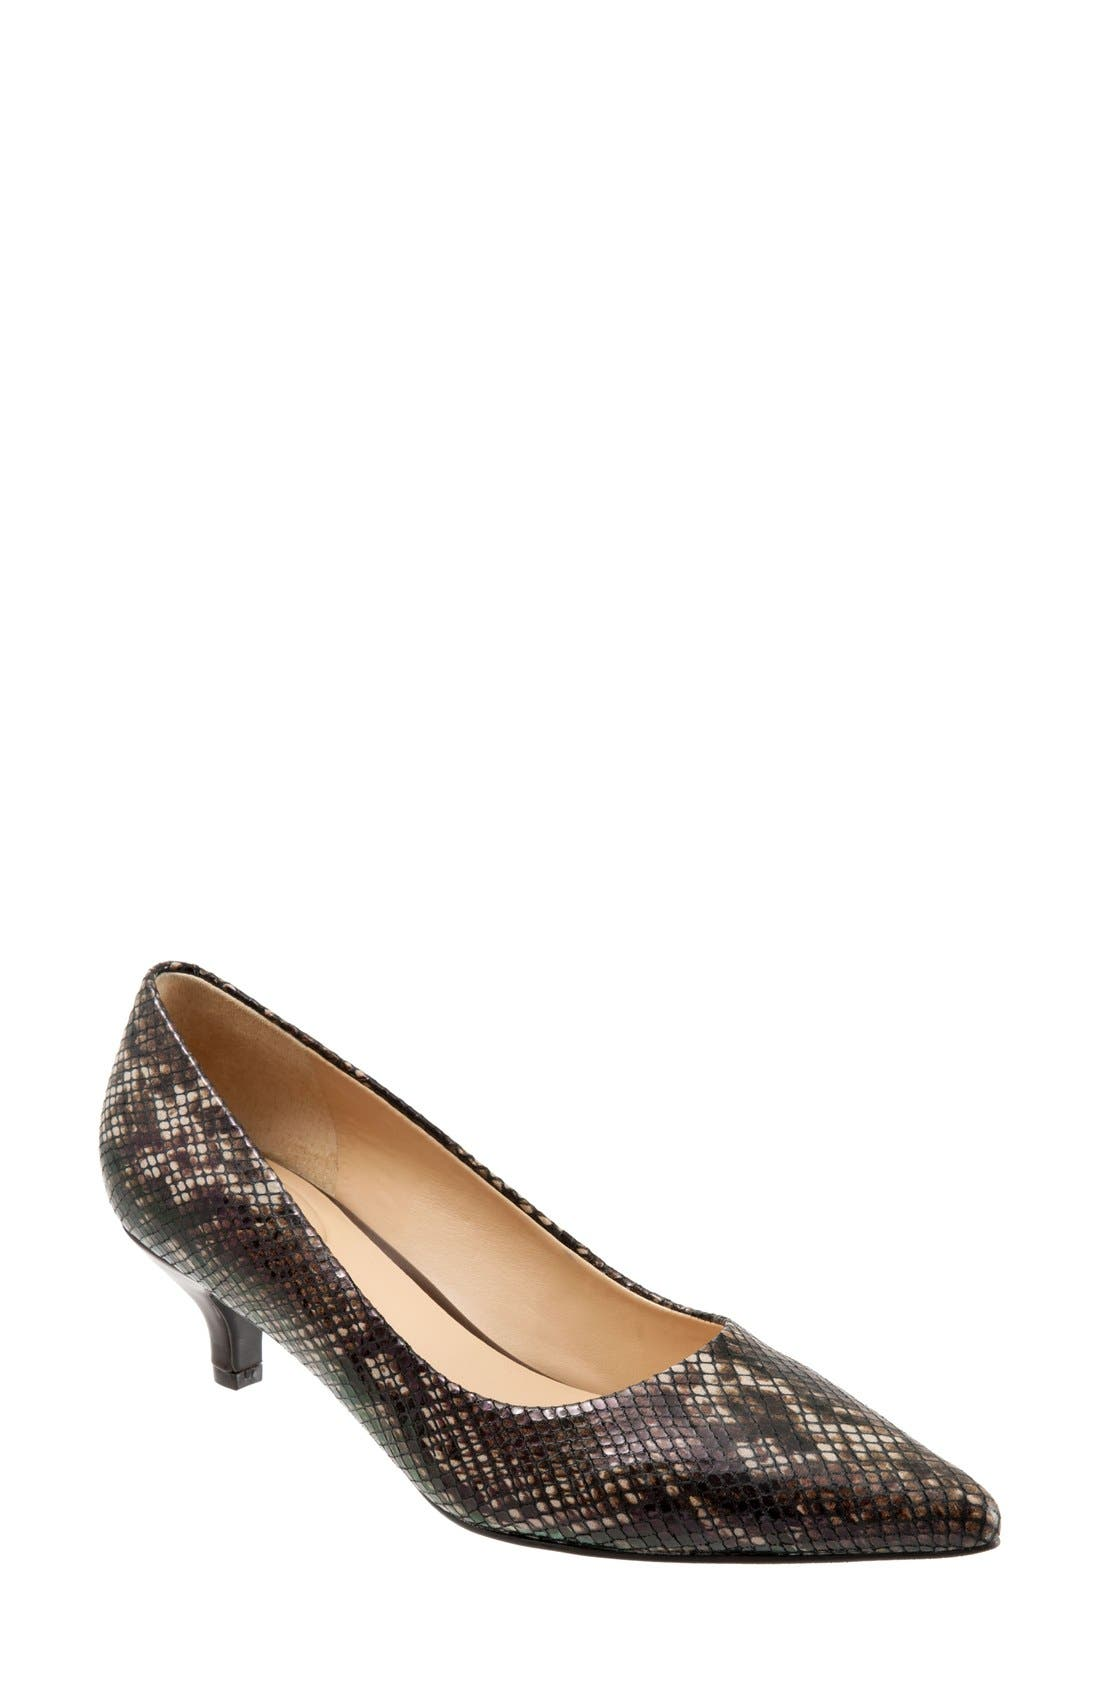 Trotters 'Paulina' Leather Pump